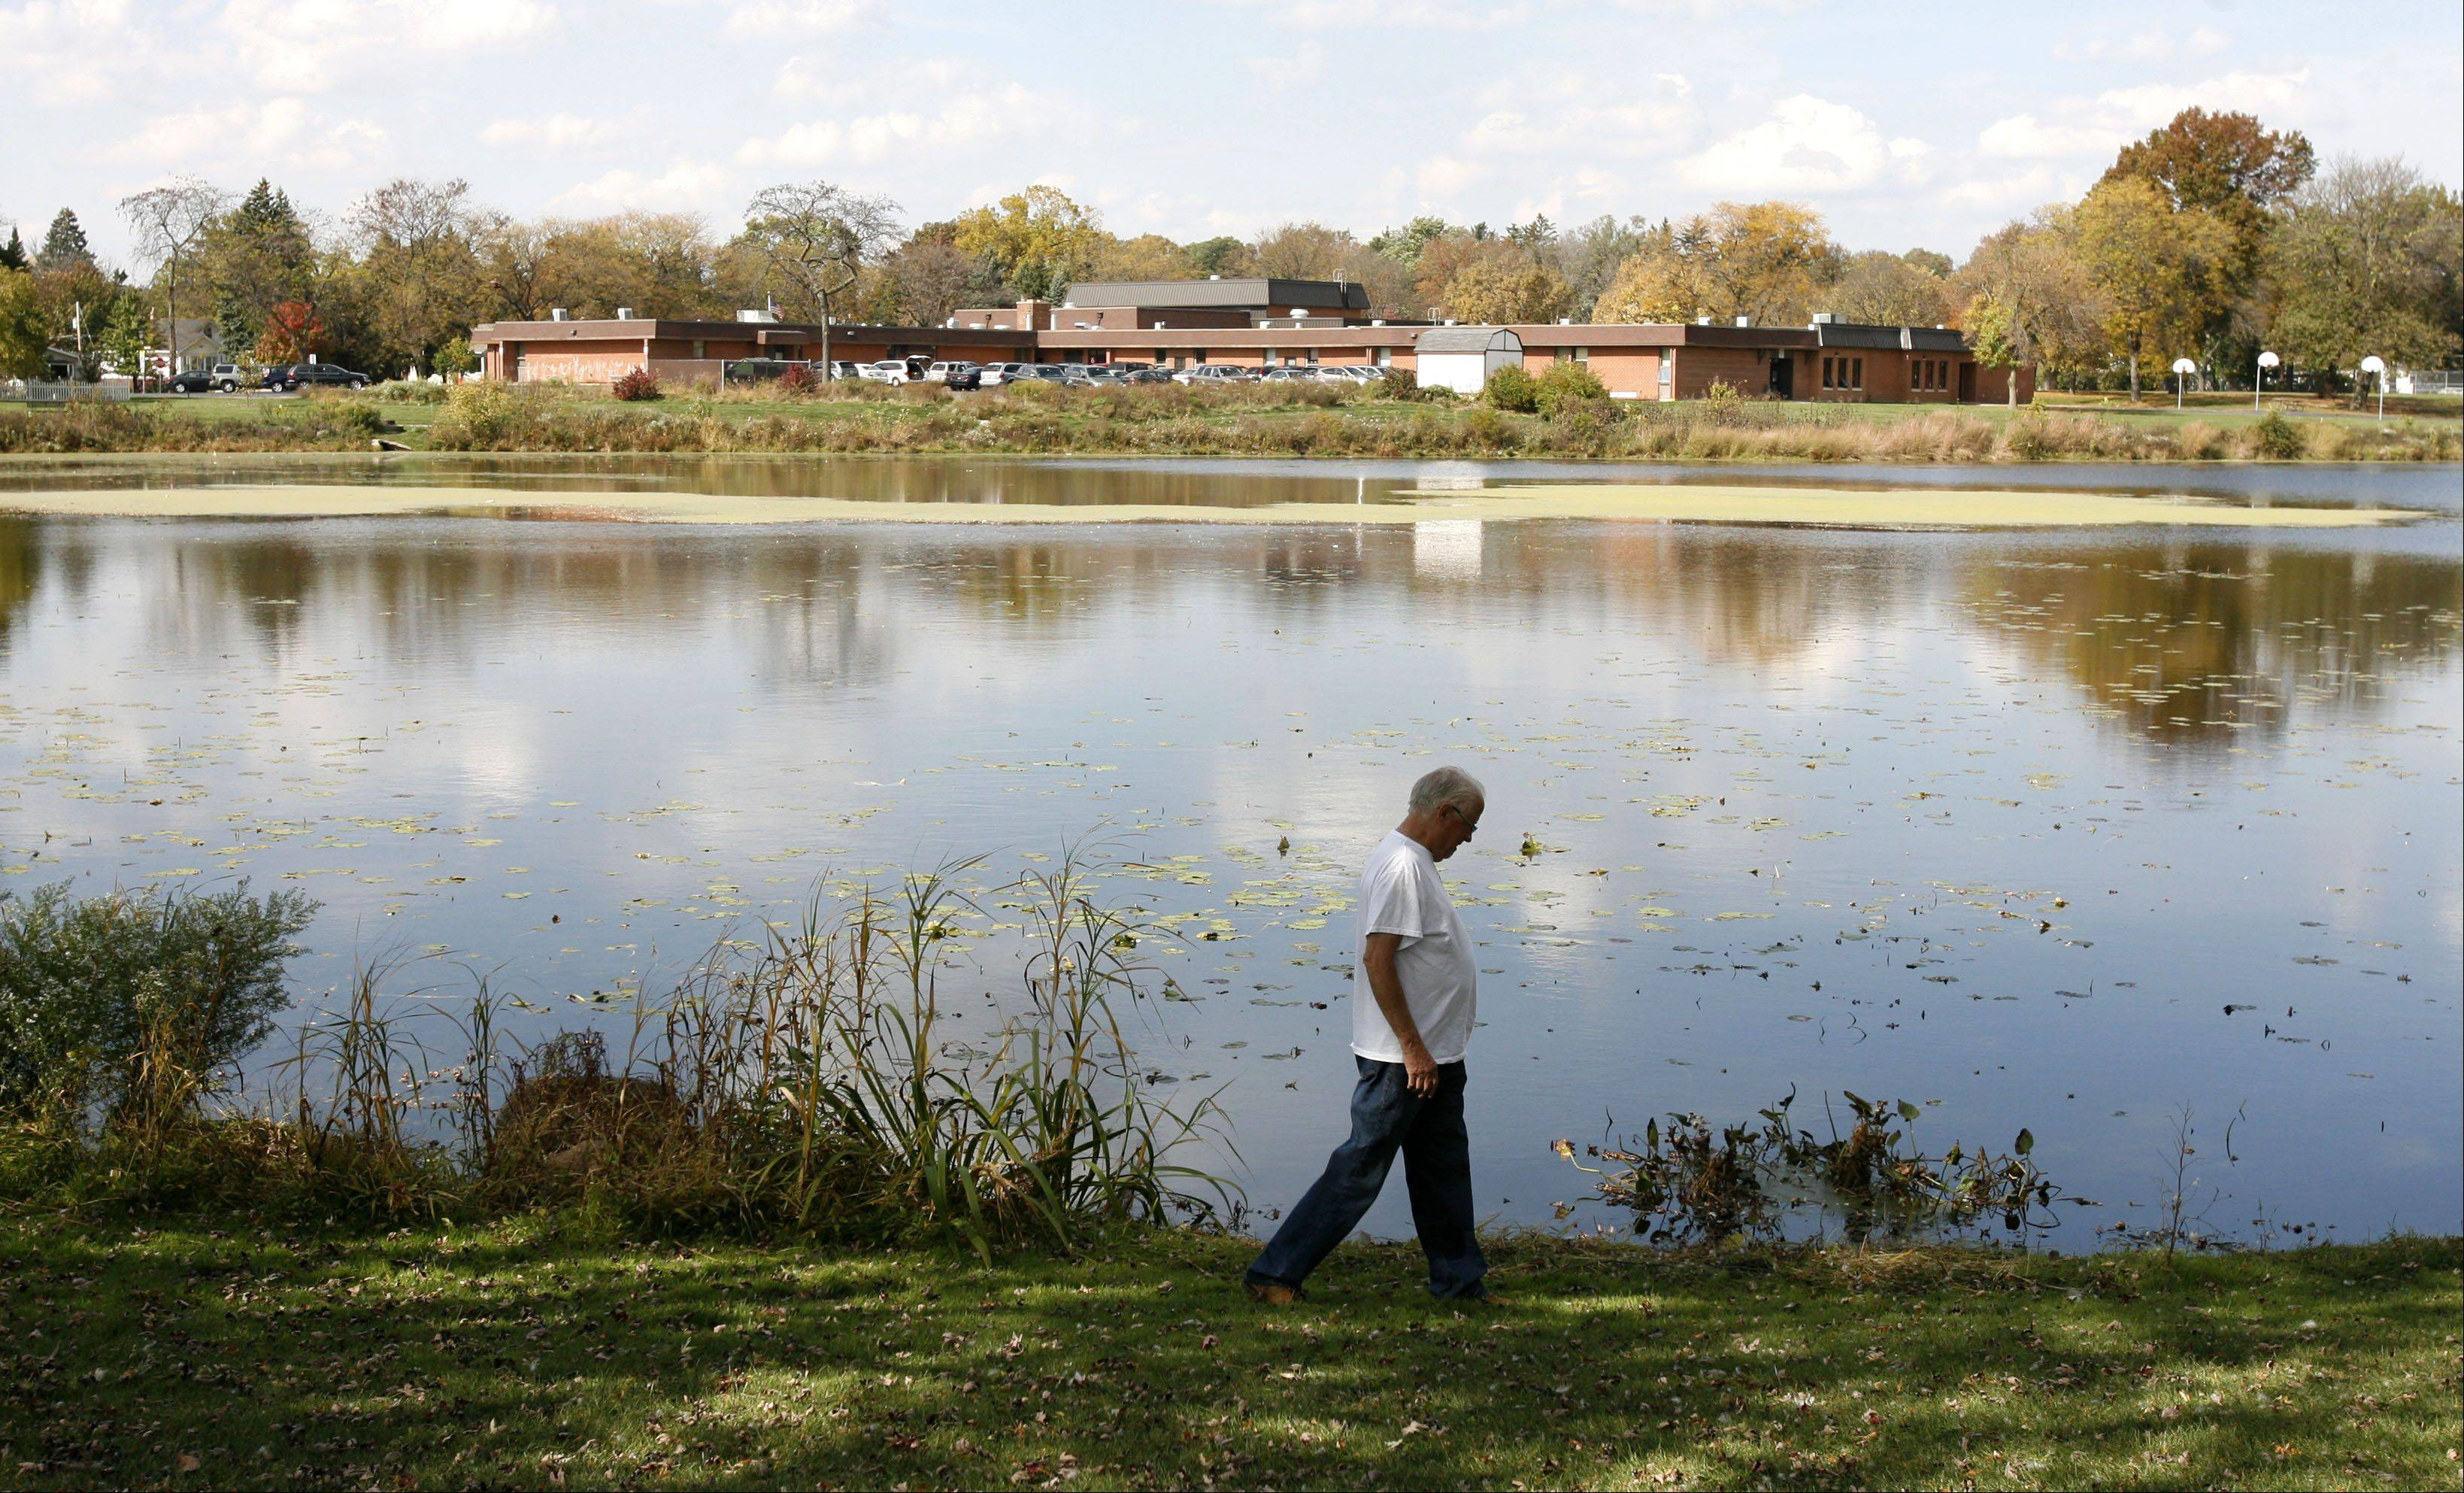 Donald Easterbrook of Lombard walks the shore of Terrace View Pond in Lombard. As the village and the park district are considering seven options to increase the pond's stormwater capacity, Easterbrook said he is concerned the pond's environment may be harmed.